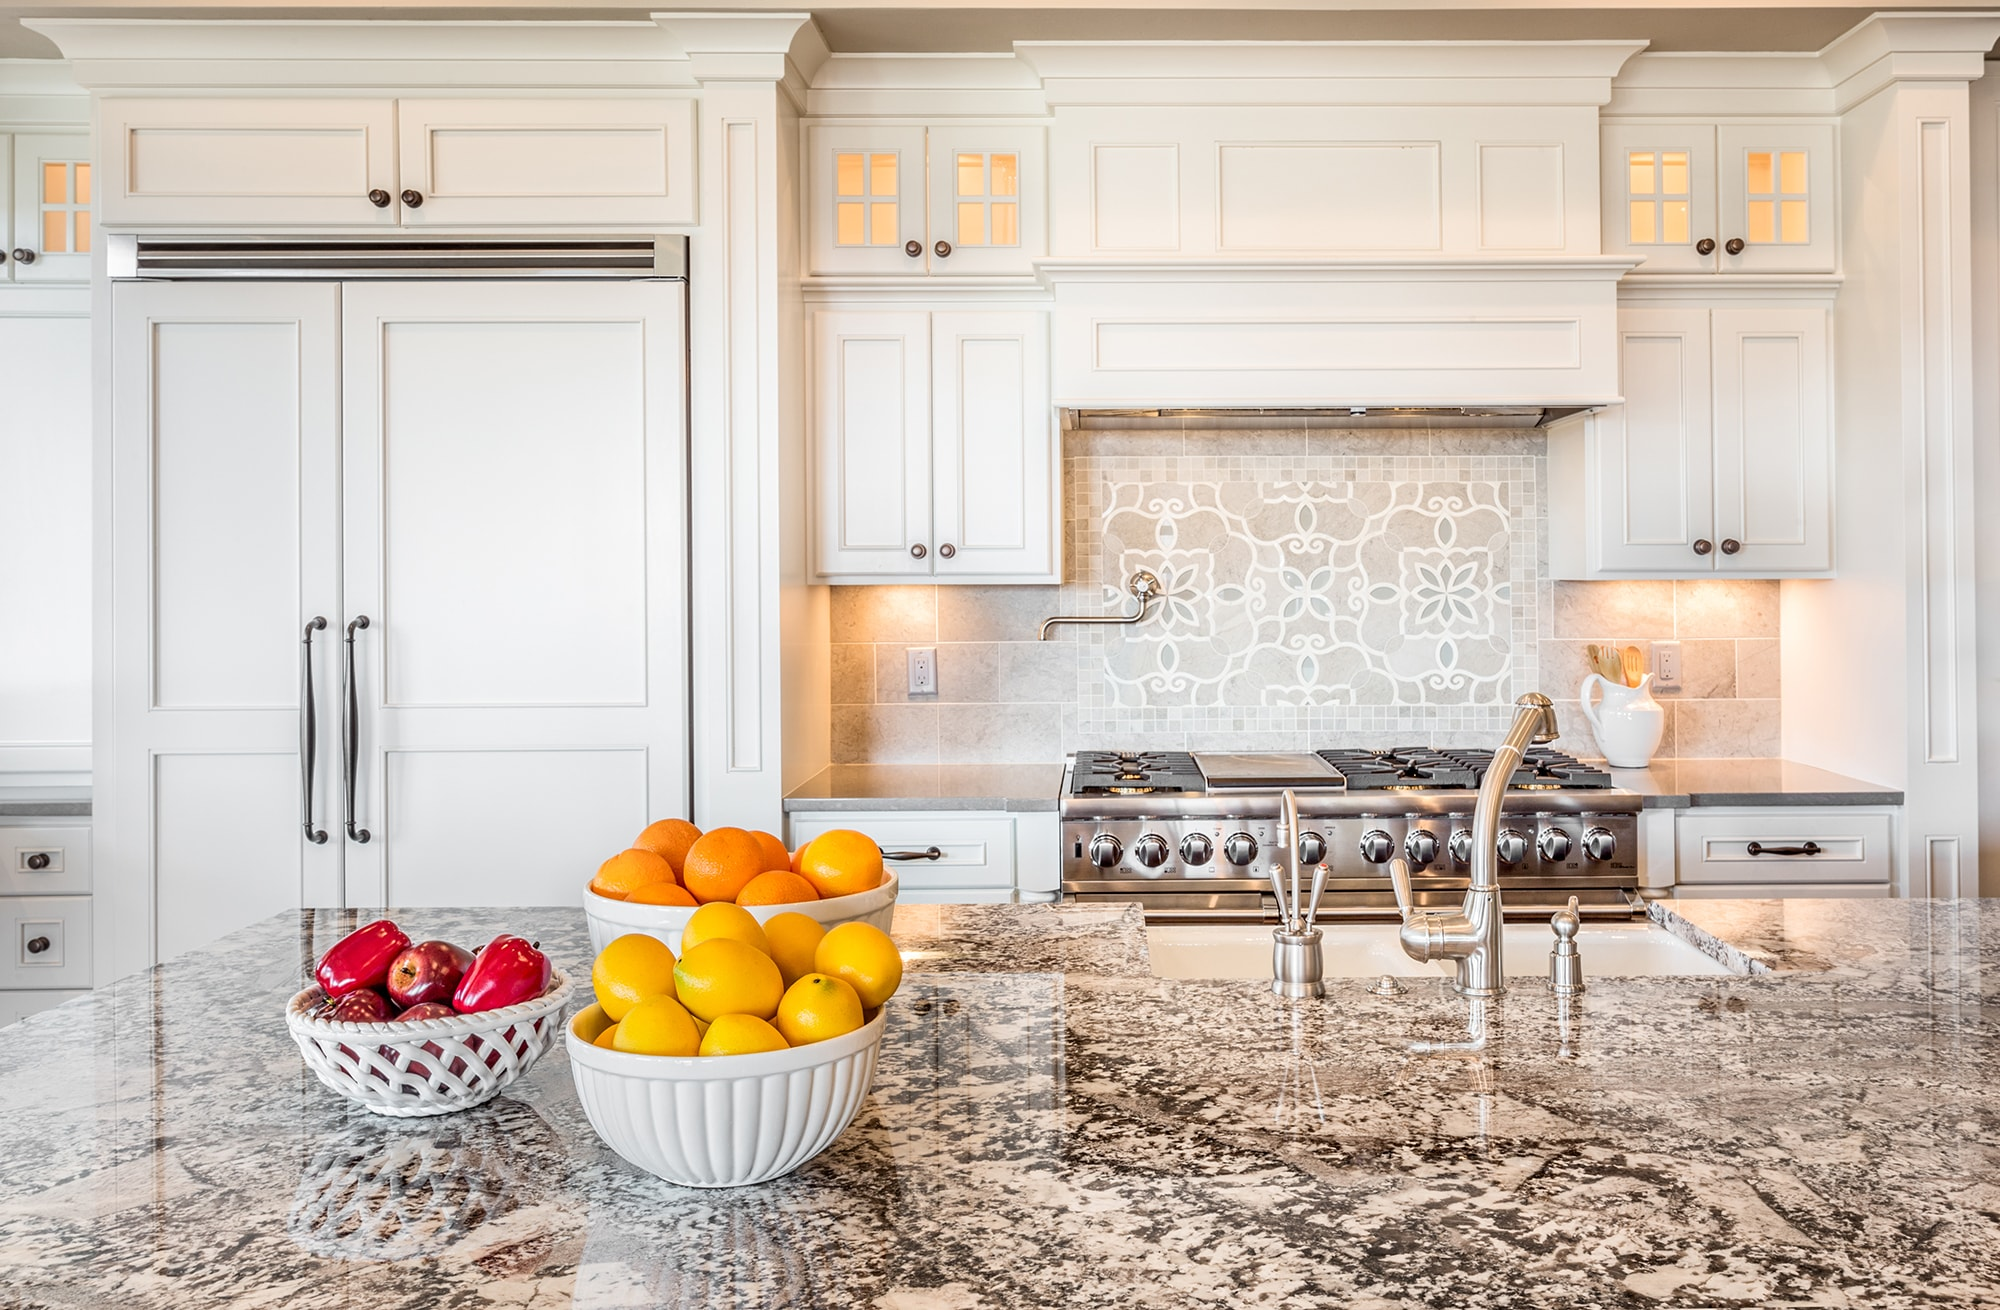 How Often Do You Need to Seal Granite Countertops?